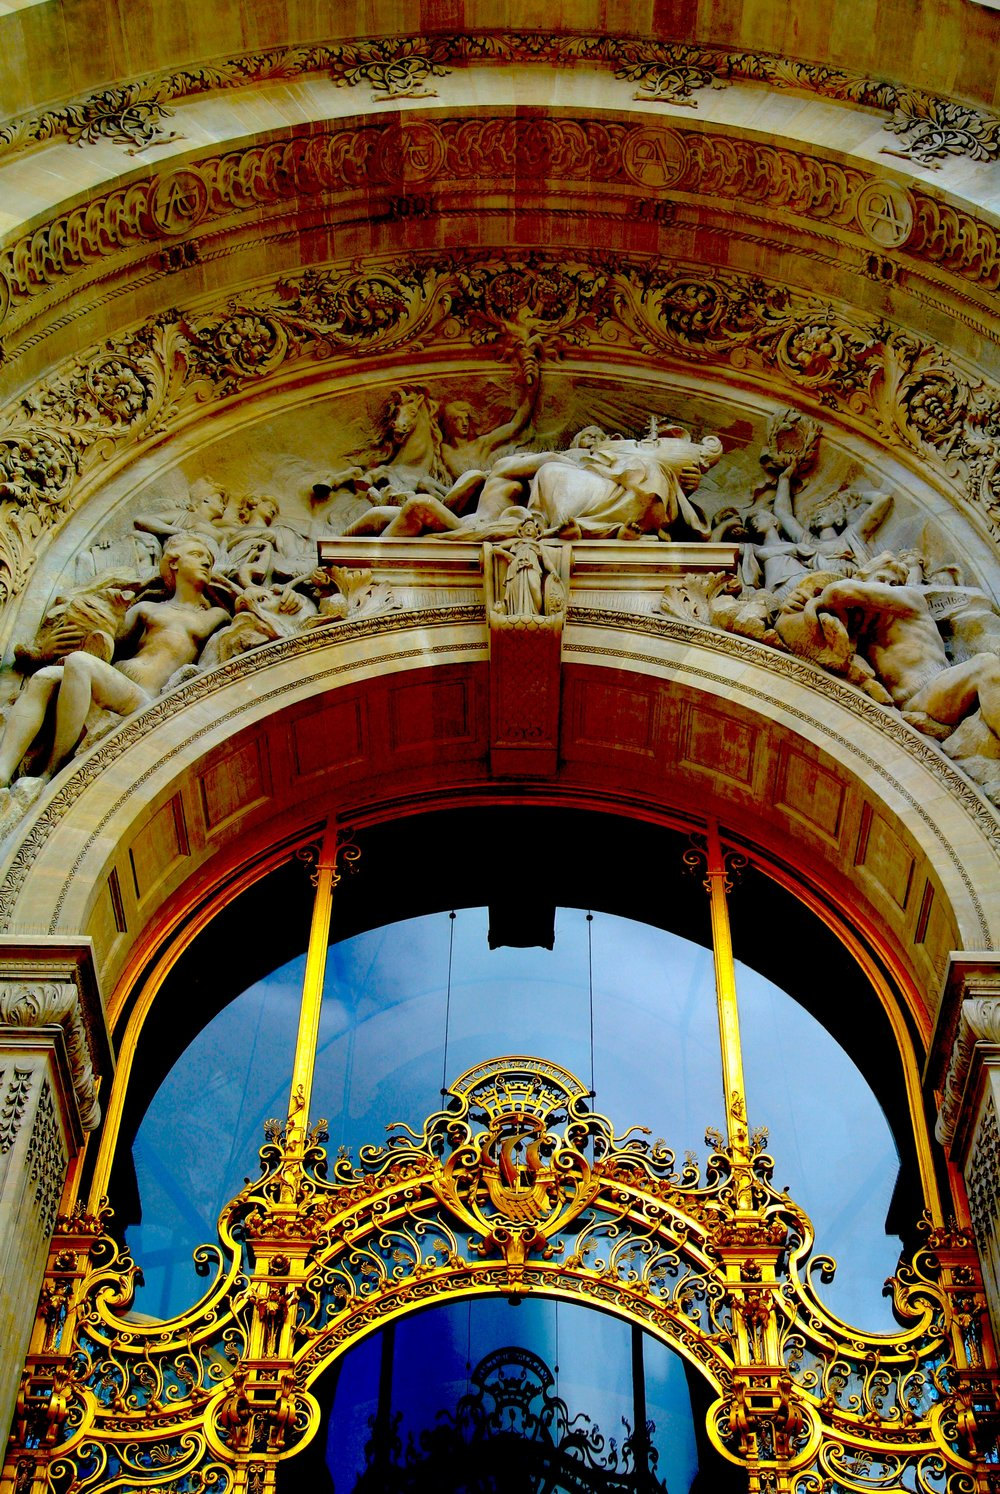 Beautiful bas-relief sculptures and amazing metalwork frame the entrance to le Petit Palais